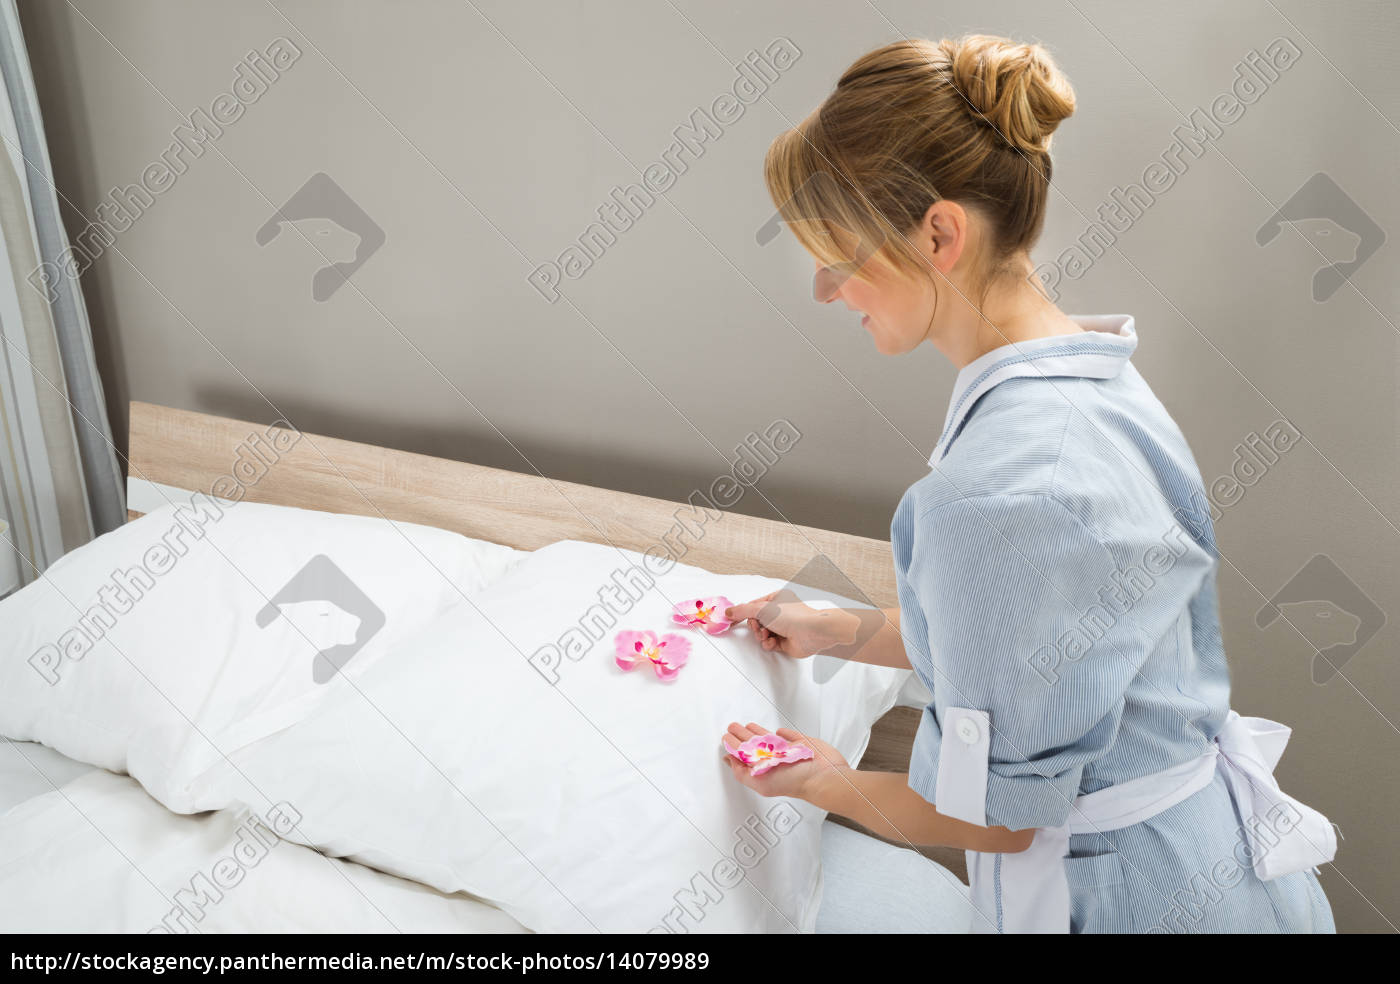 housekeeper, decorating, pillows, with, petals - 14079989